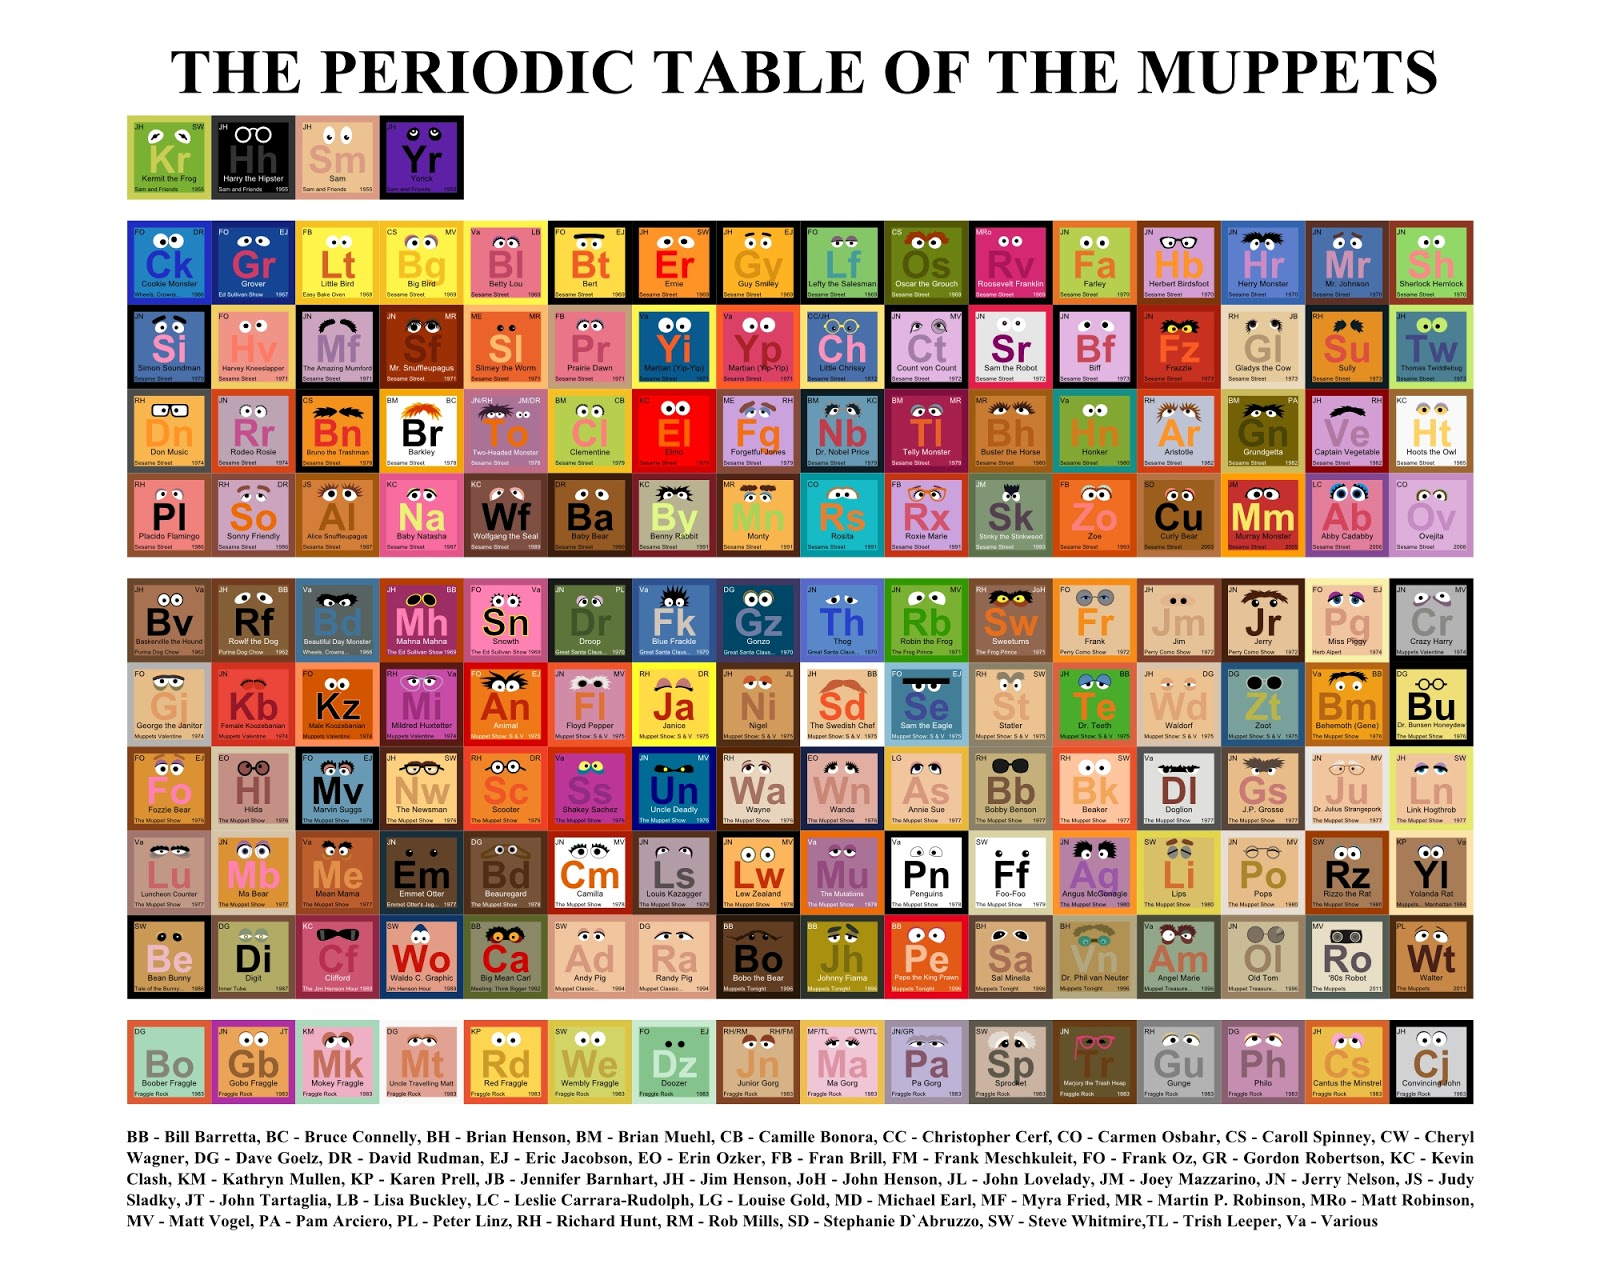 Periodic table of muppets scratchpad fandom powered by wikia the periodic table of muppets is a graphic picture by mike boon it shows the characters eyes the abbreviation is the color of the characters nose urtaz Gallery